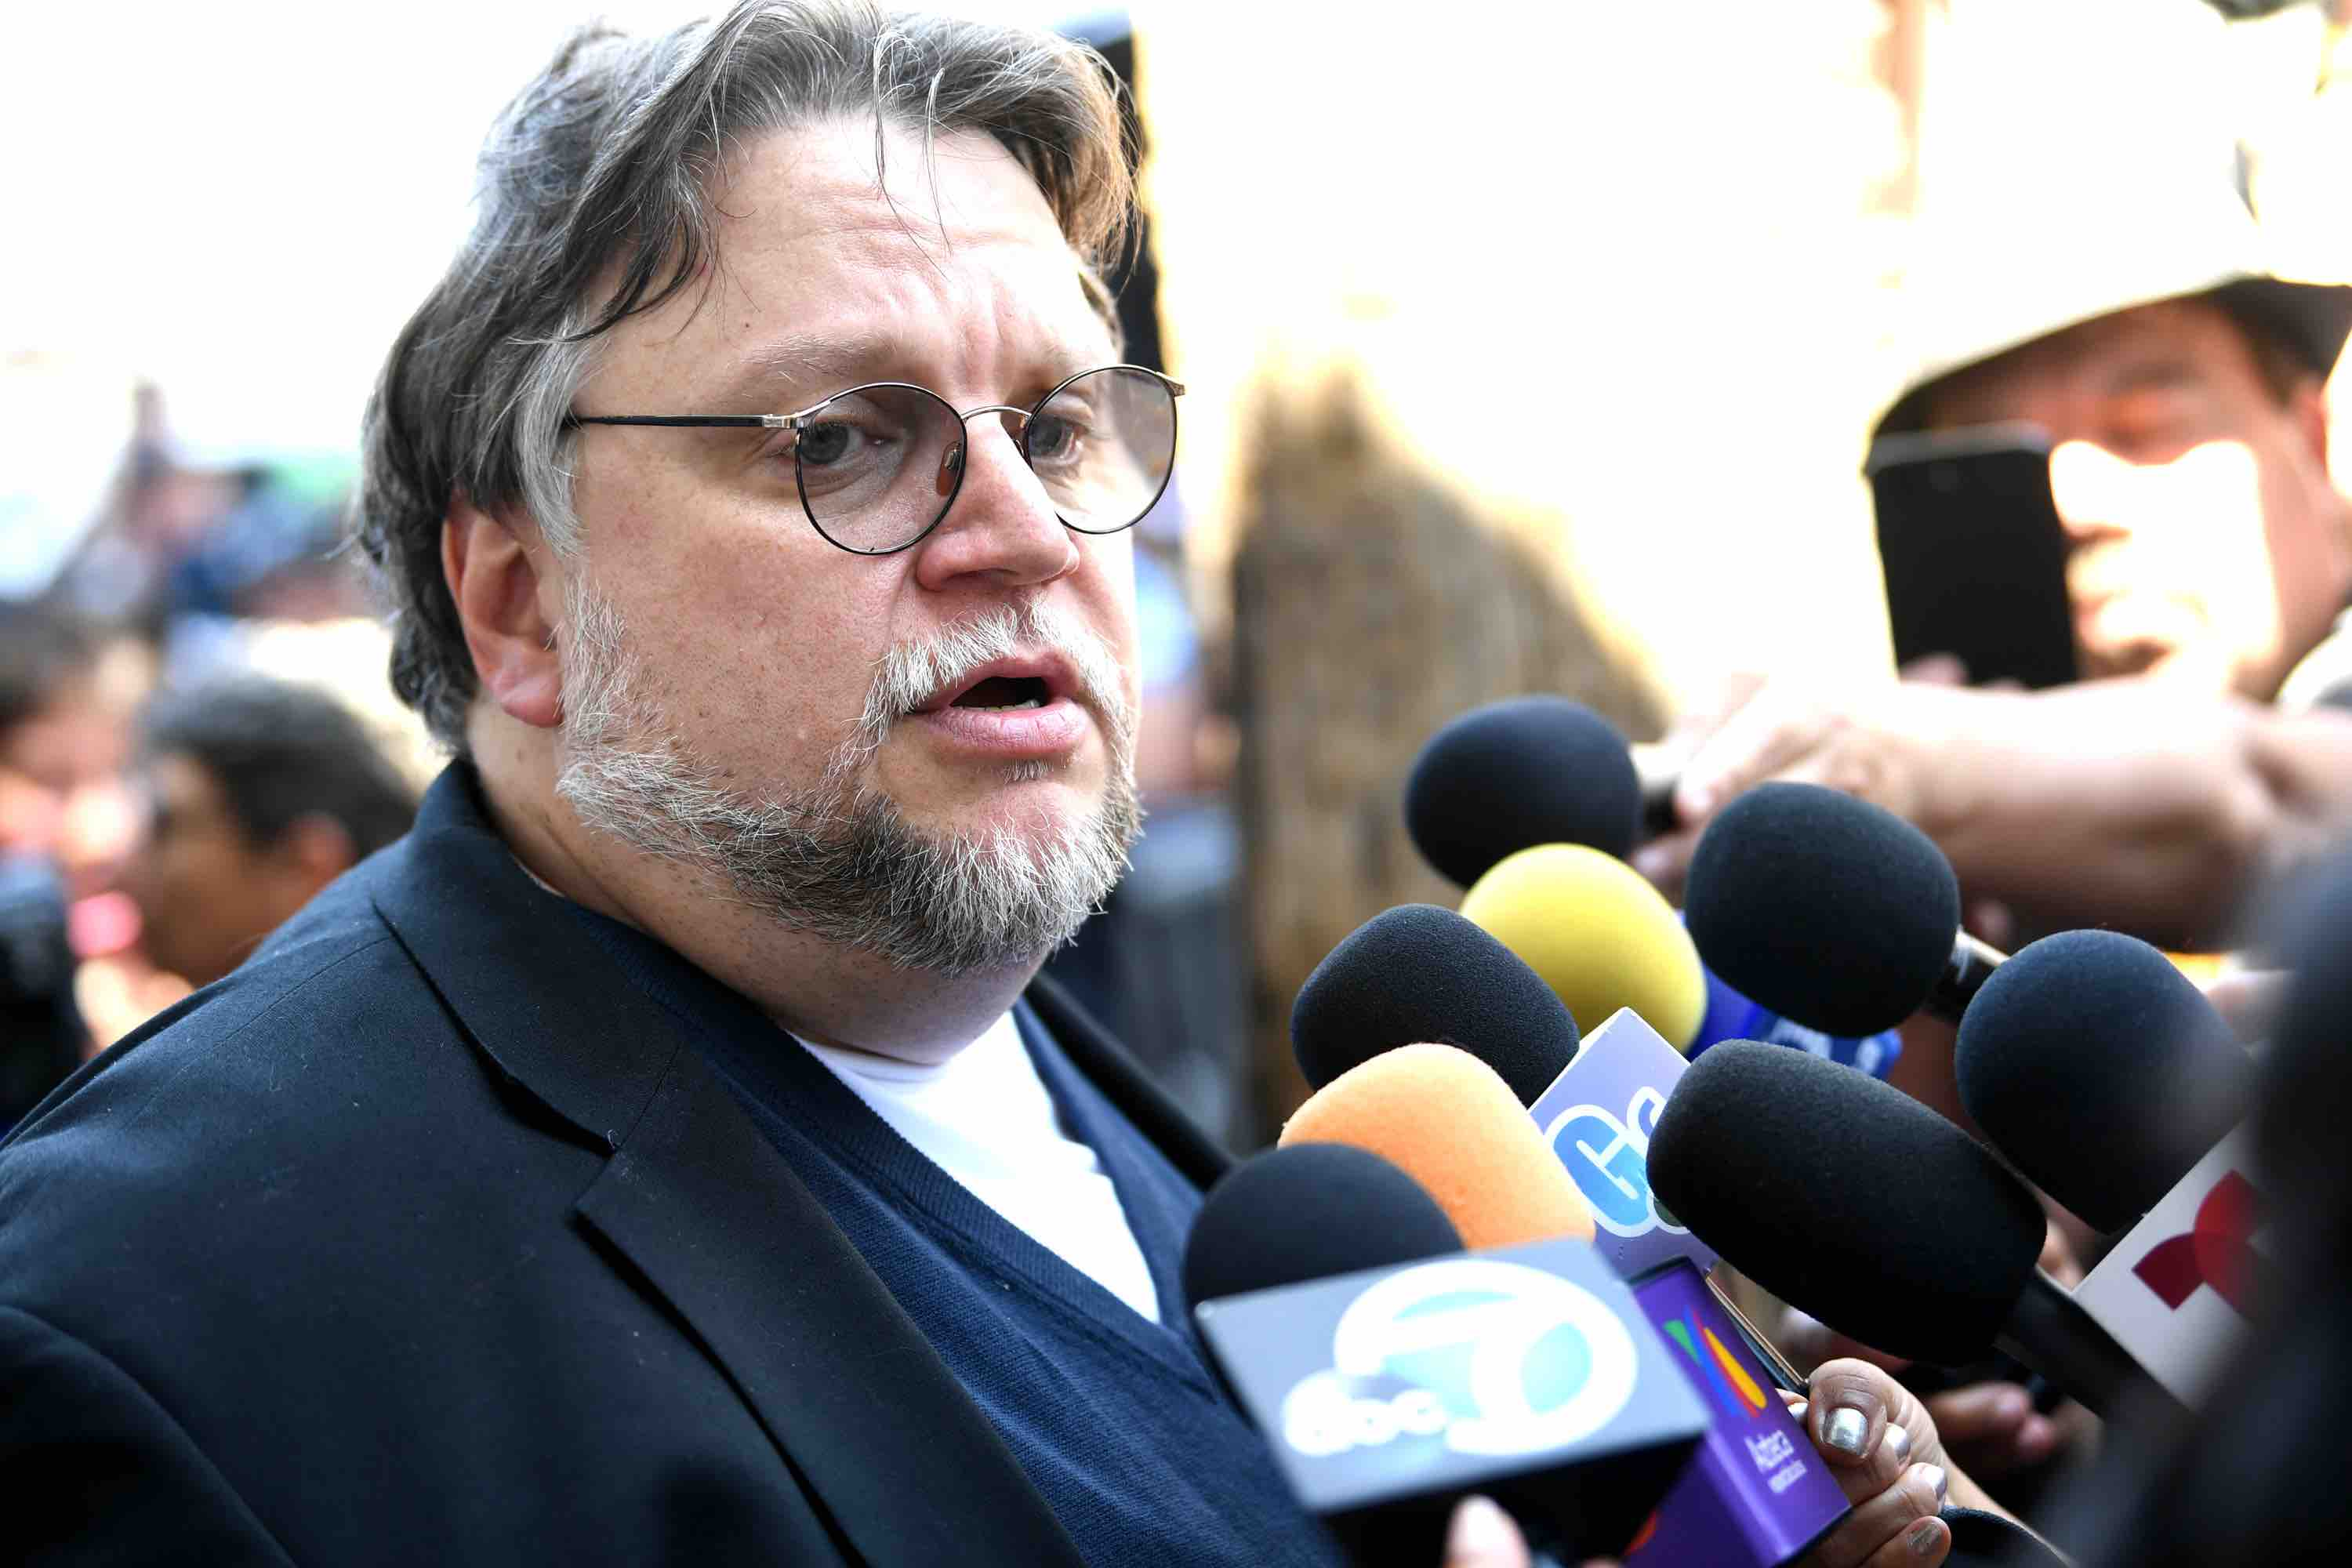 Guillermo del Toro Calls Out Victoria for Using His Image on Beer Cans Without Permission